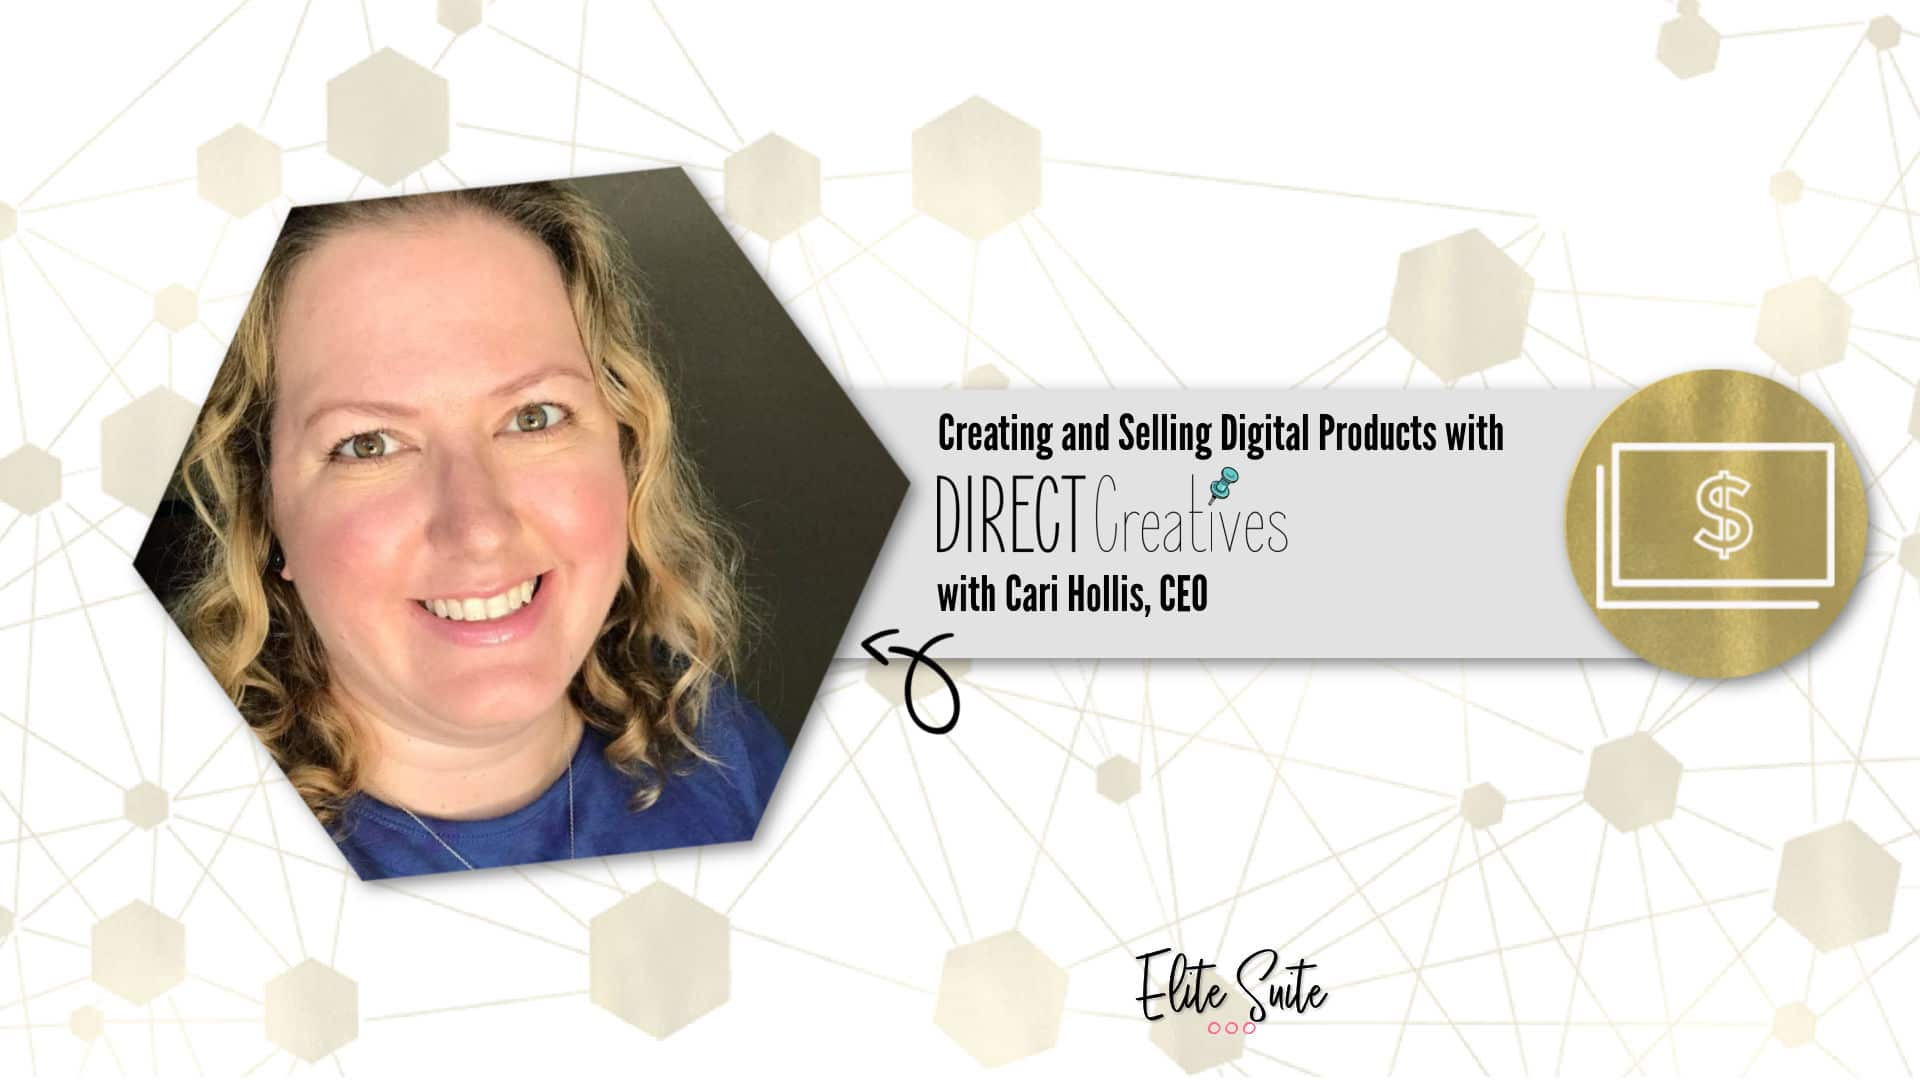 Creating and Selling Digital Products with Direct Creatives masterclass overlay